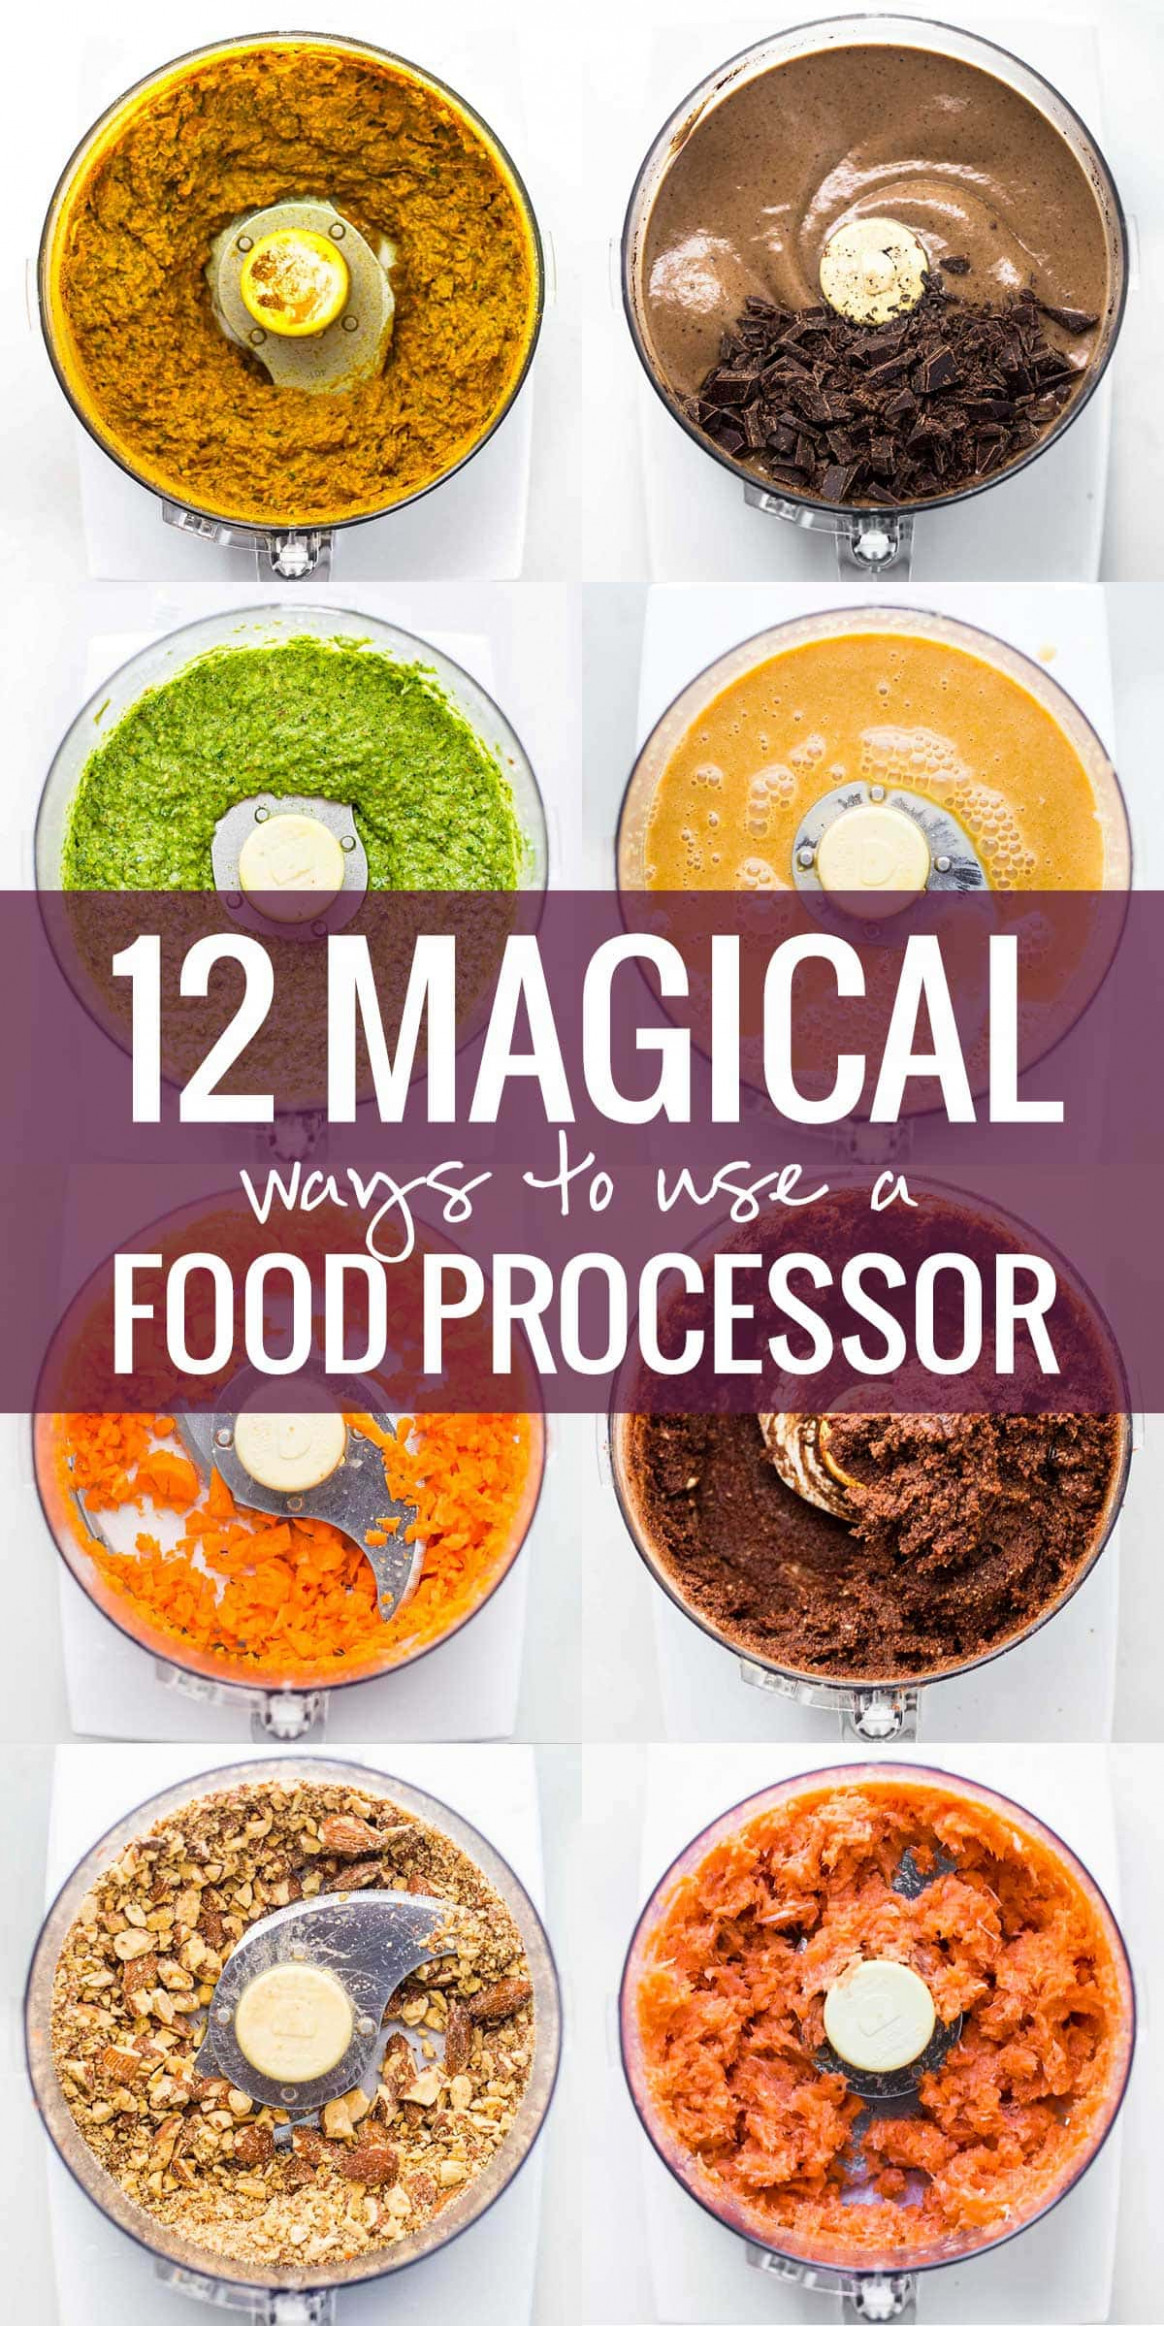 12 Magical Ways To Use A Food Processor - Pinch of Yum - recipes in food processor